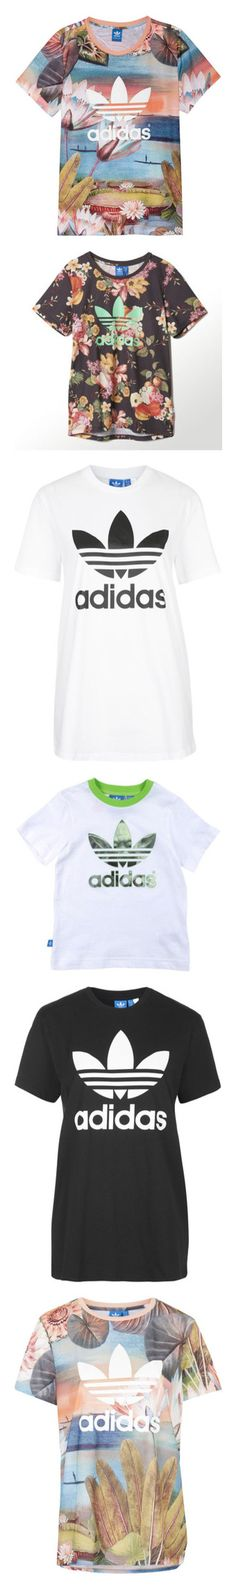 """""""Adidas Shirts"""" by king-alysa ❤ liked on Polyvore featuring tops, t-shirts, shirts, tees, curso dagua logo, shoes, women, womens clothing, adidas trefoil tee and graphic t shirts"""